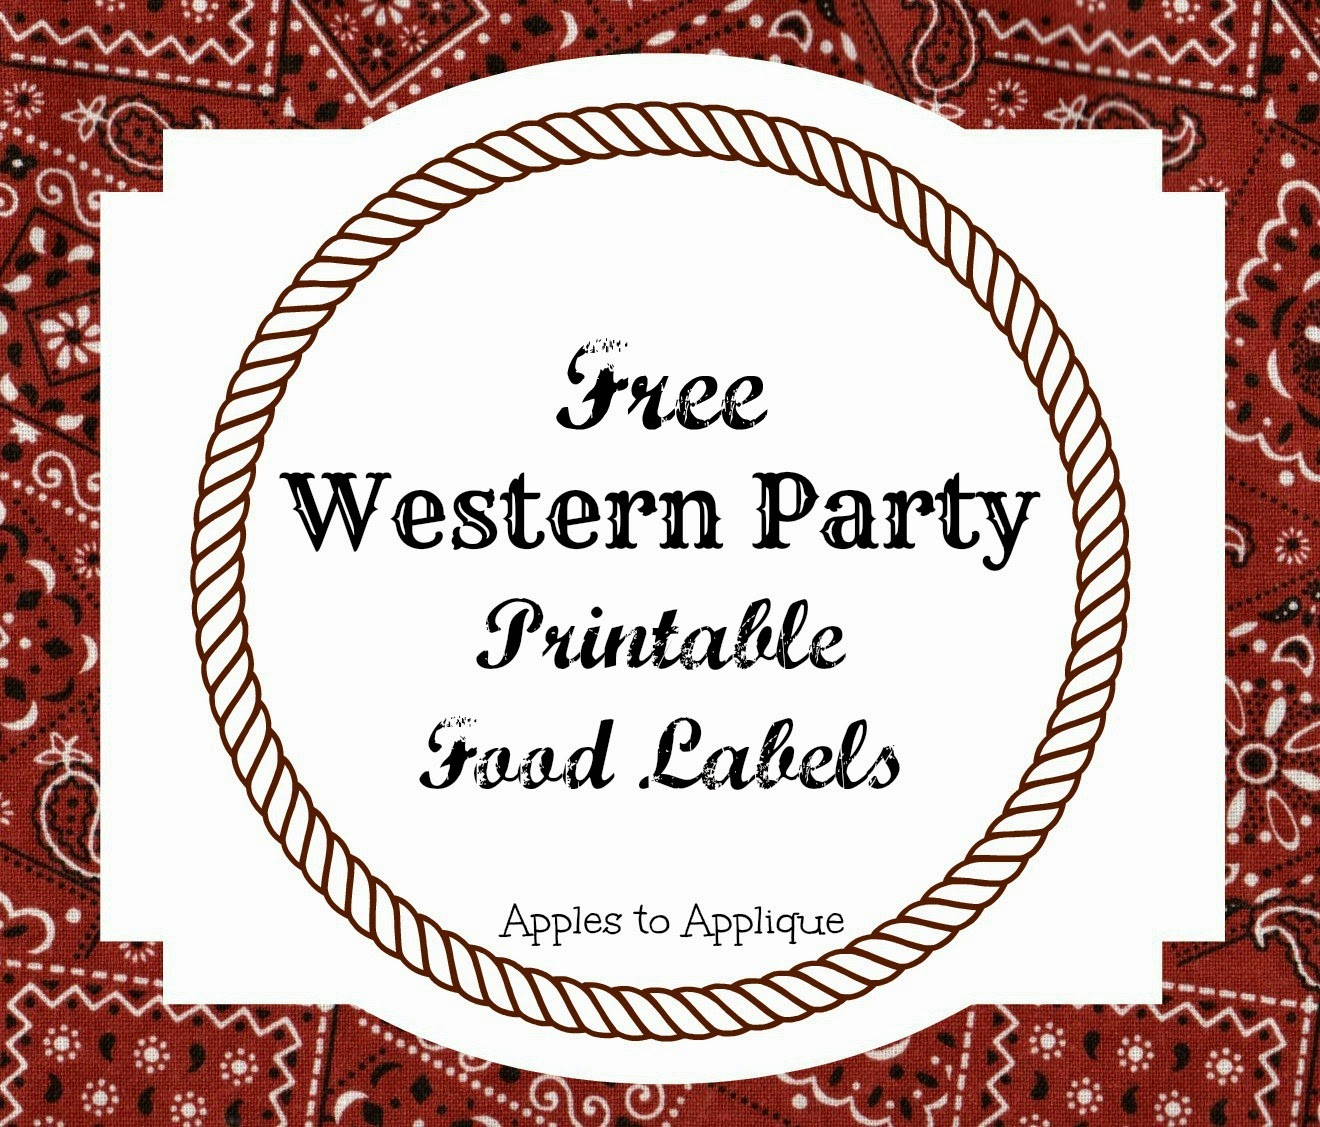 picture relating to Free Printable Food Labels for Party called Apples toward Applique: Western Occasion: Foods Labels Absolutely free Printables